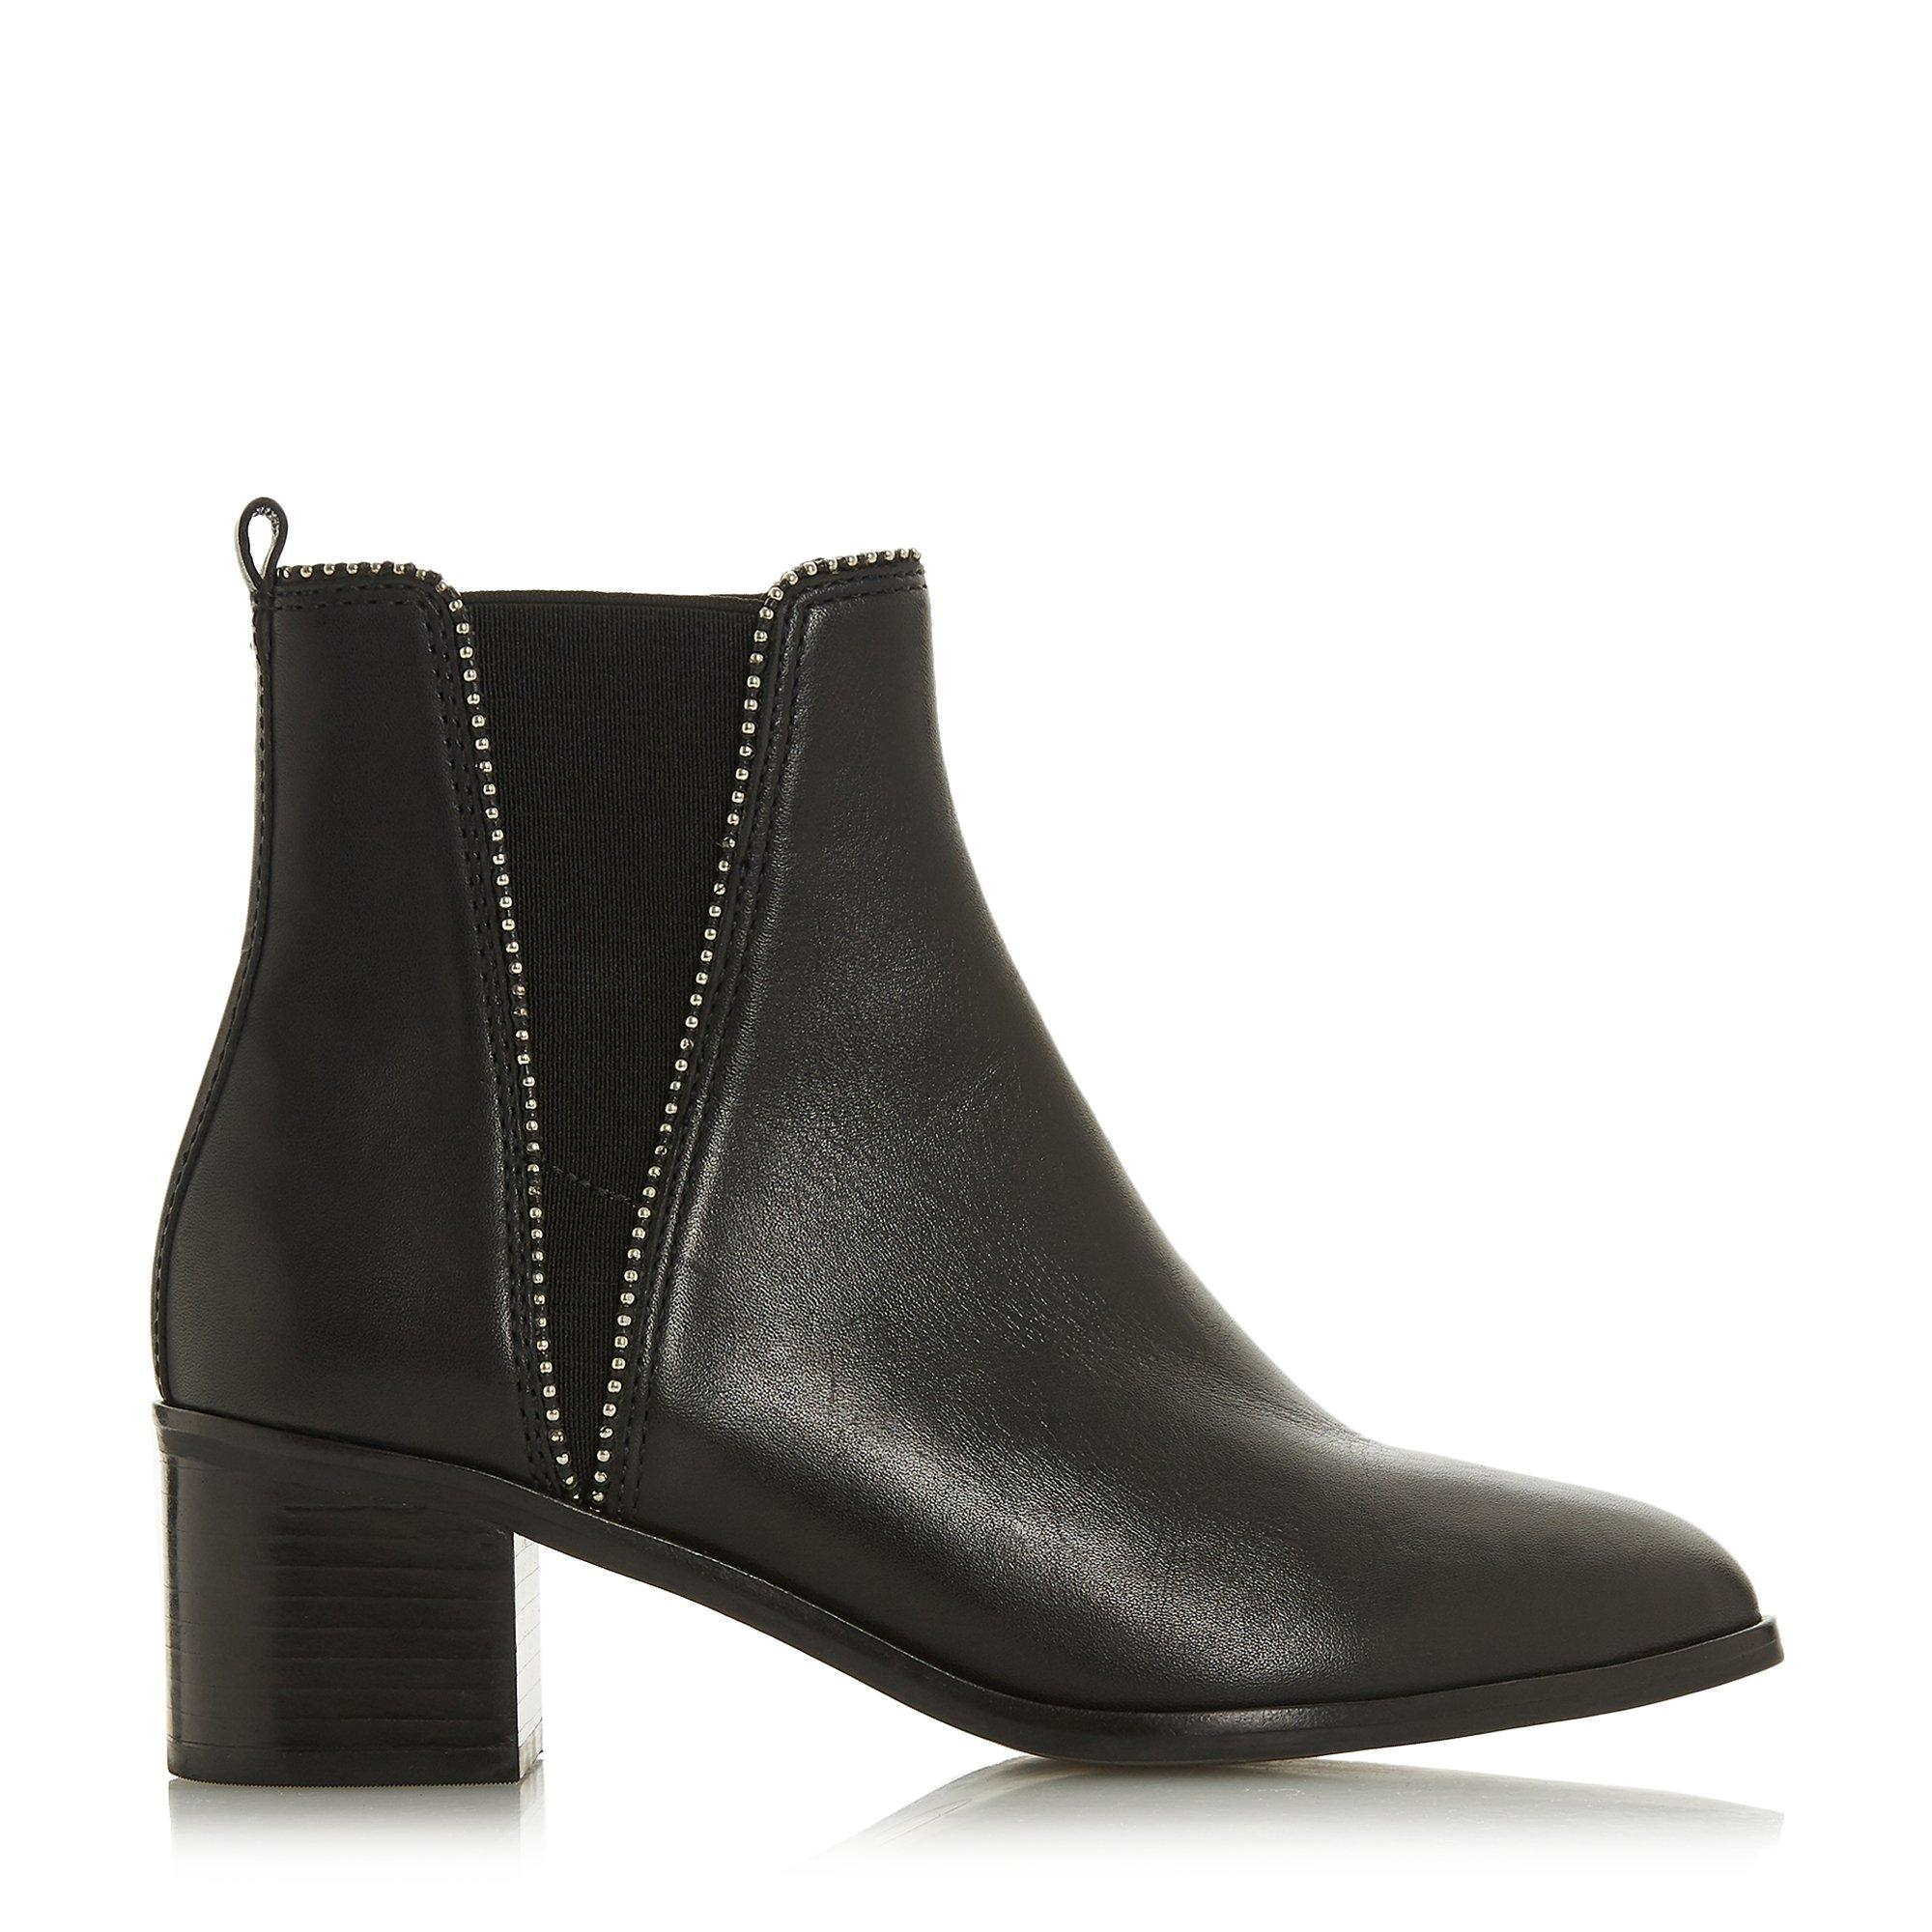 Ladies Ankle Boots - Ankle Boots For Women | Dune London